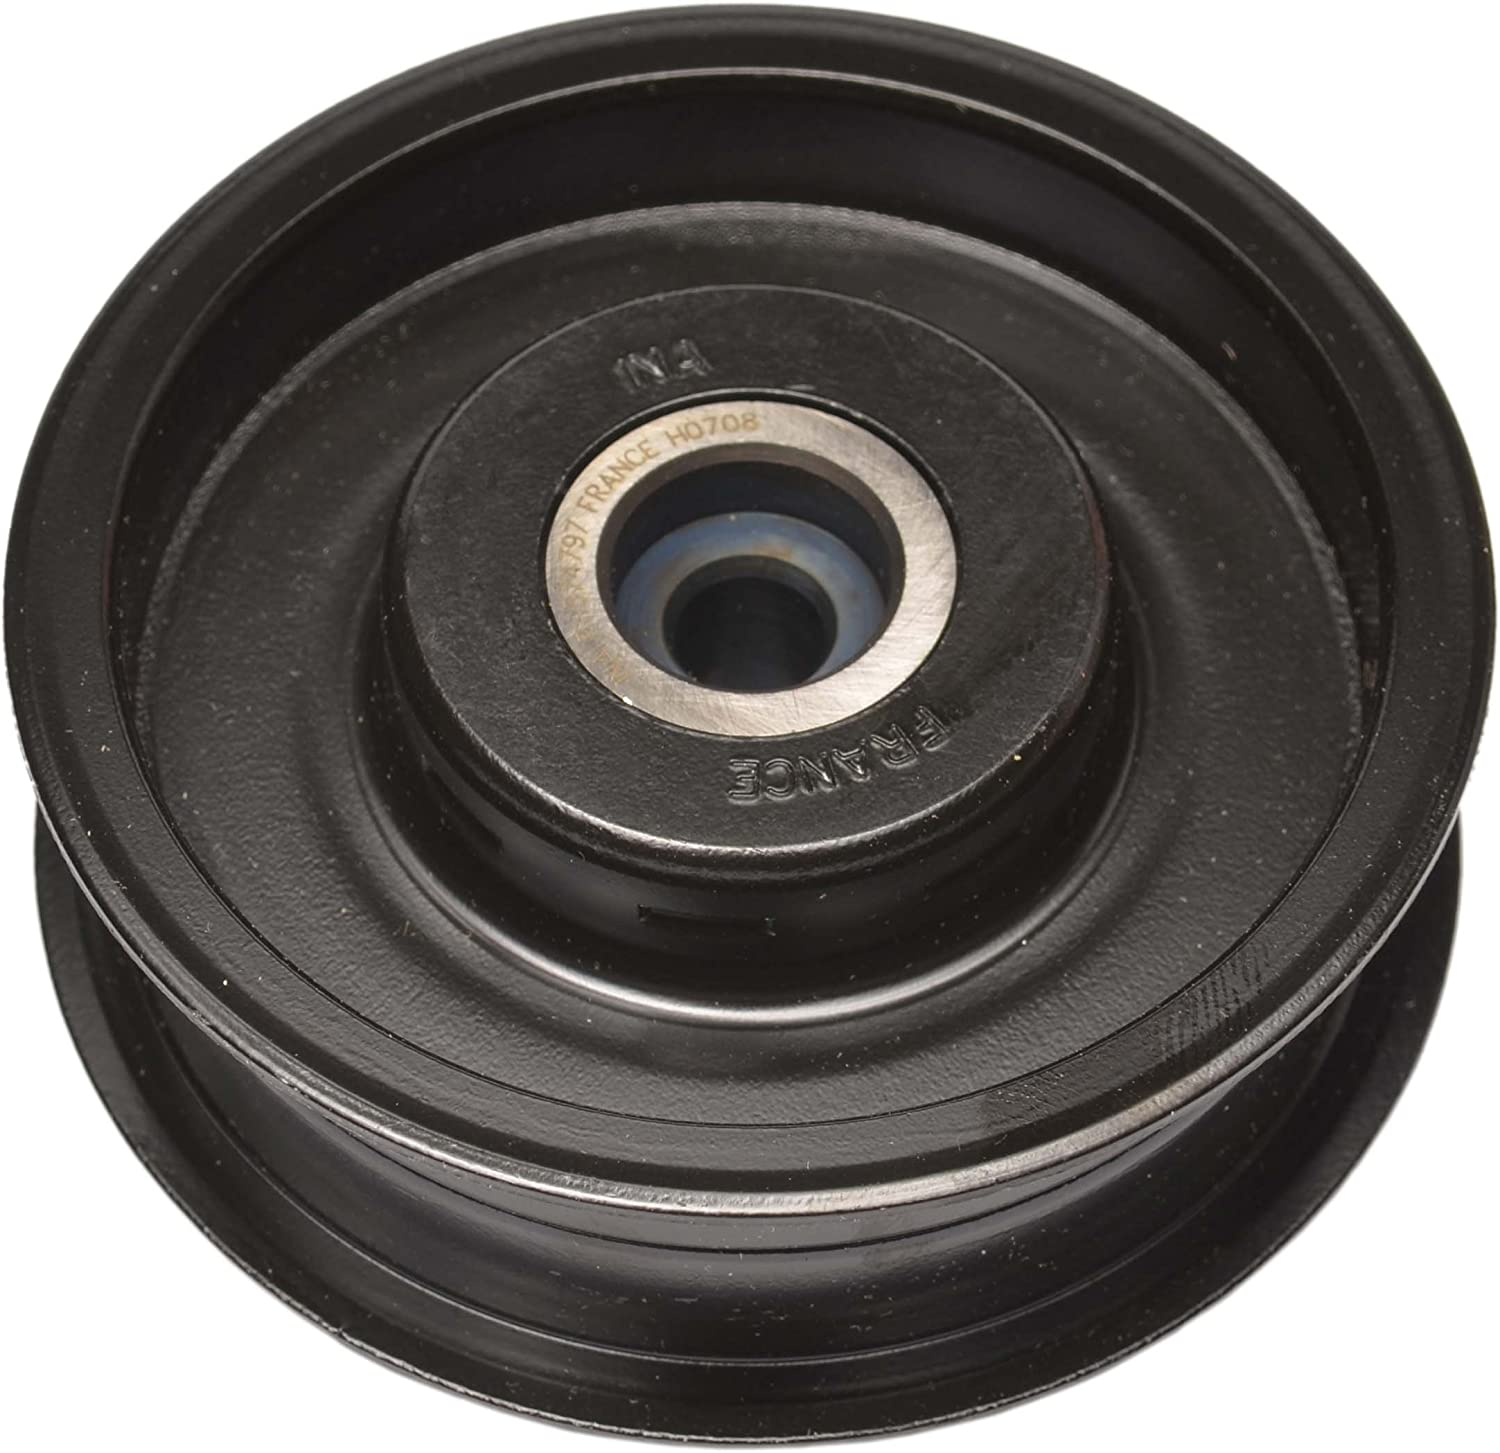 Continental Max 53% OFF 50019 Pulley Ranking TOP12 Accu-Drive